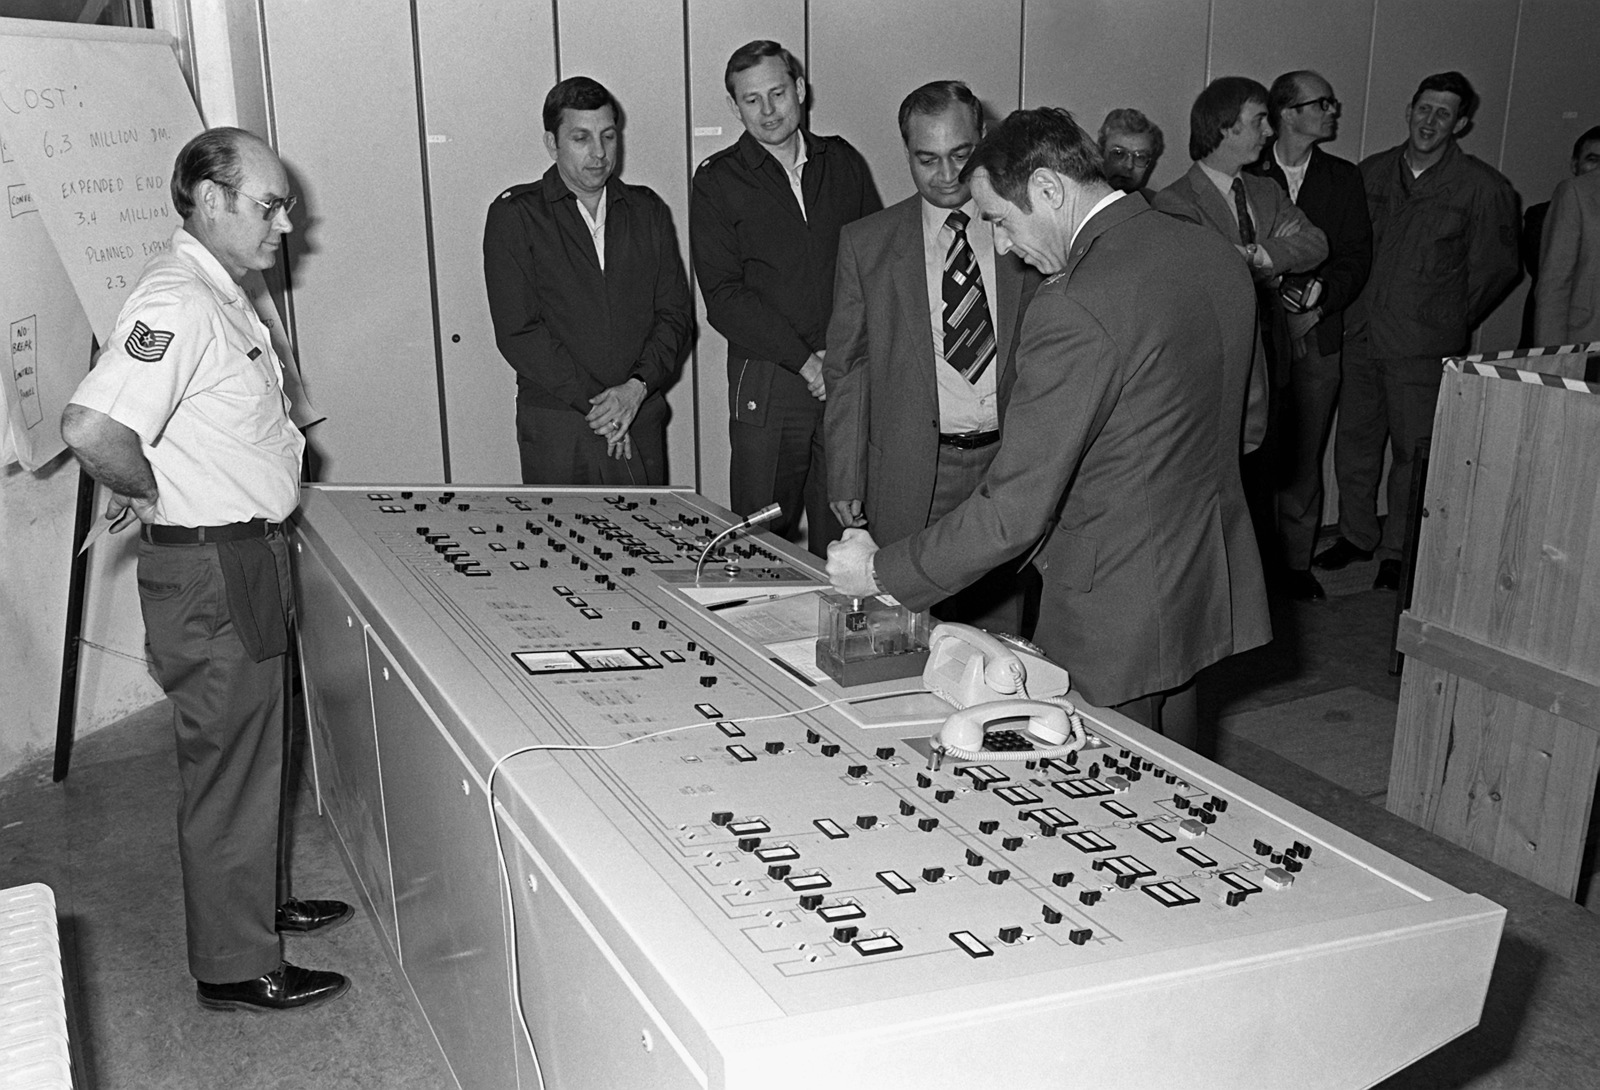 From (left to right), MSGT R. Lemere, LTC P. Feldman, MAJ N. Krause, N. Jaggi and COL G. Spohn participate in the grand opening of the new Power Conservation System at Tempelhof Central Airport